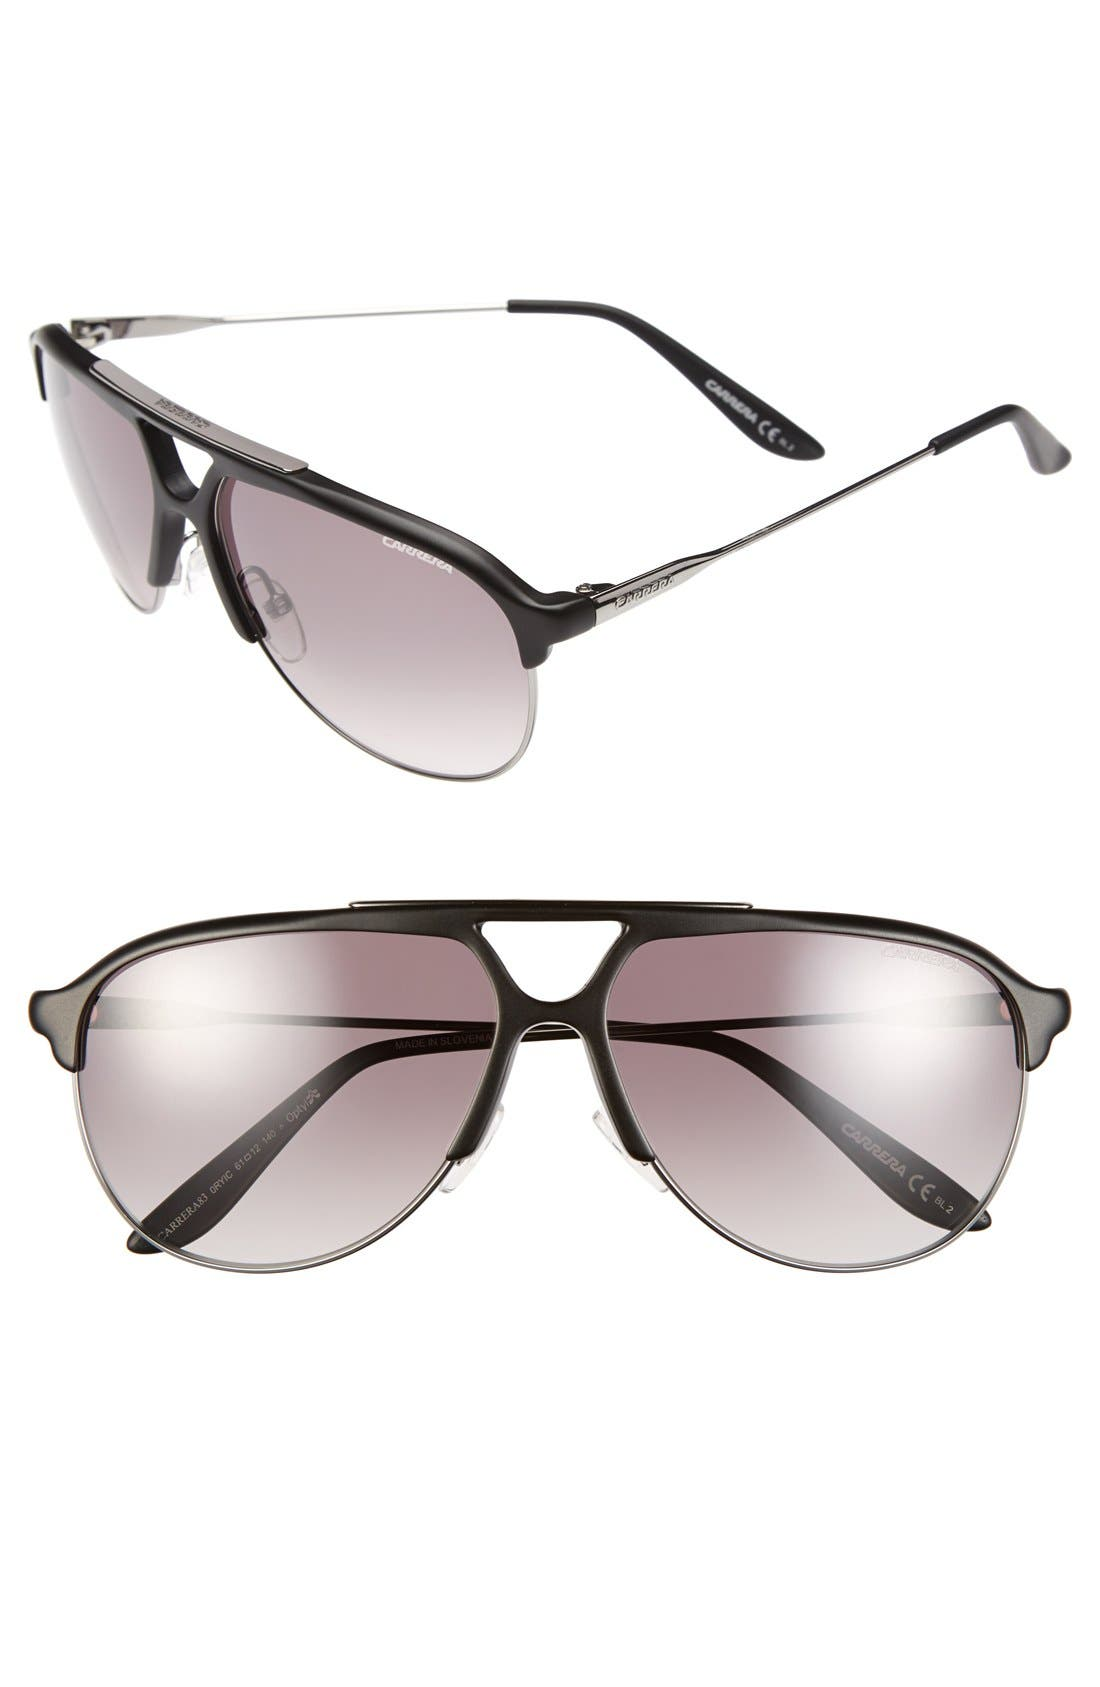 61mm Sunglasses,                             Main thumbnail 1, color,                             042